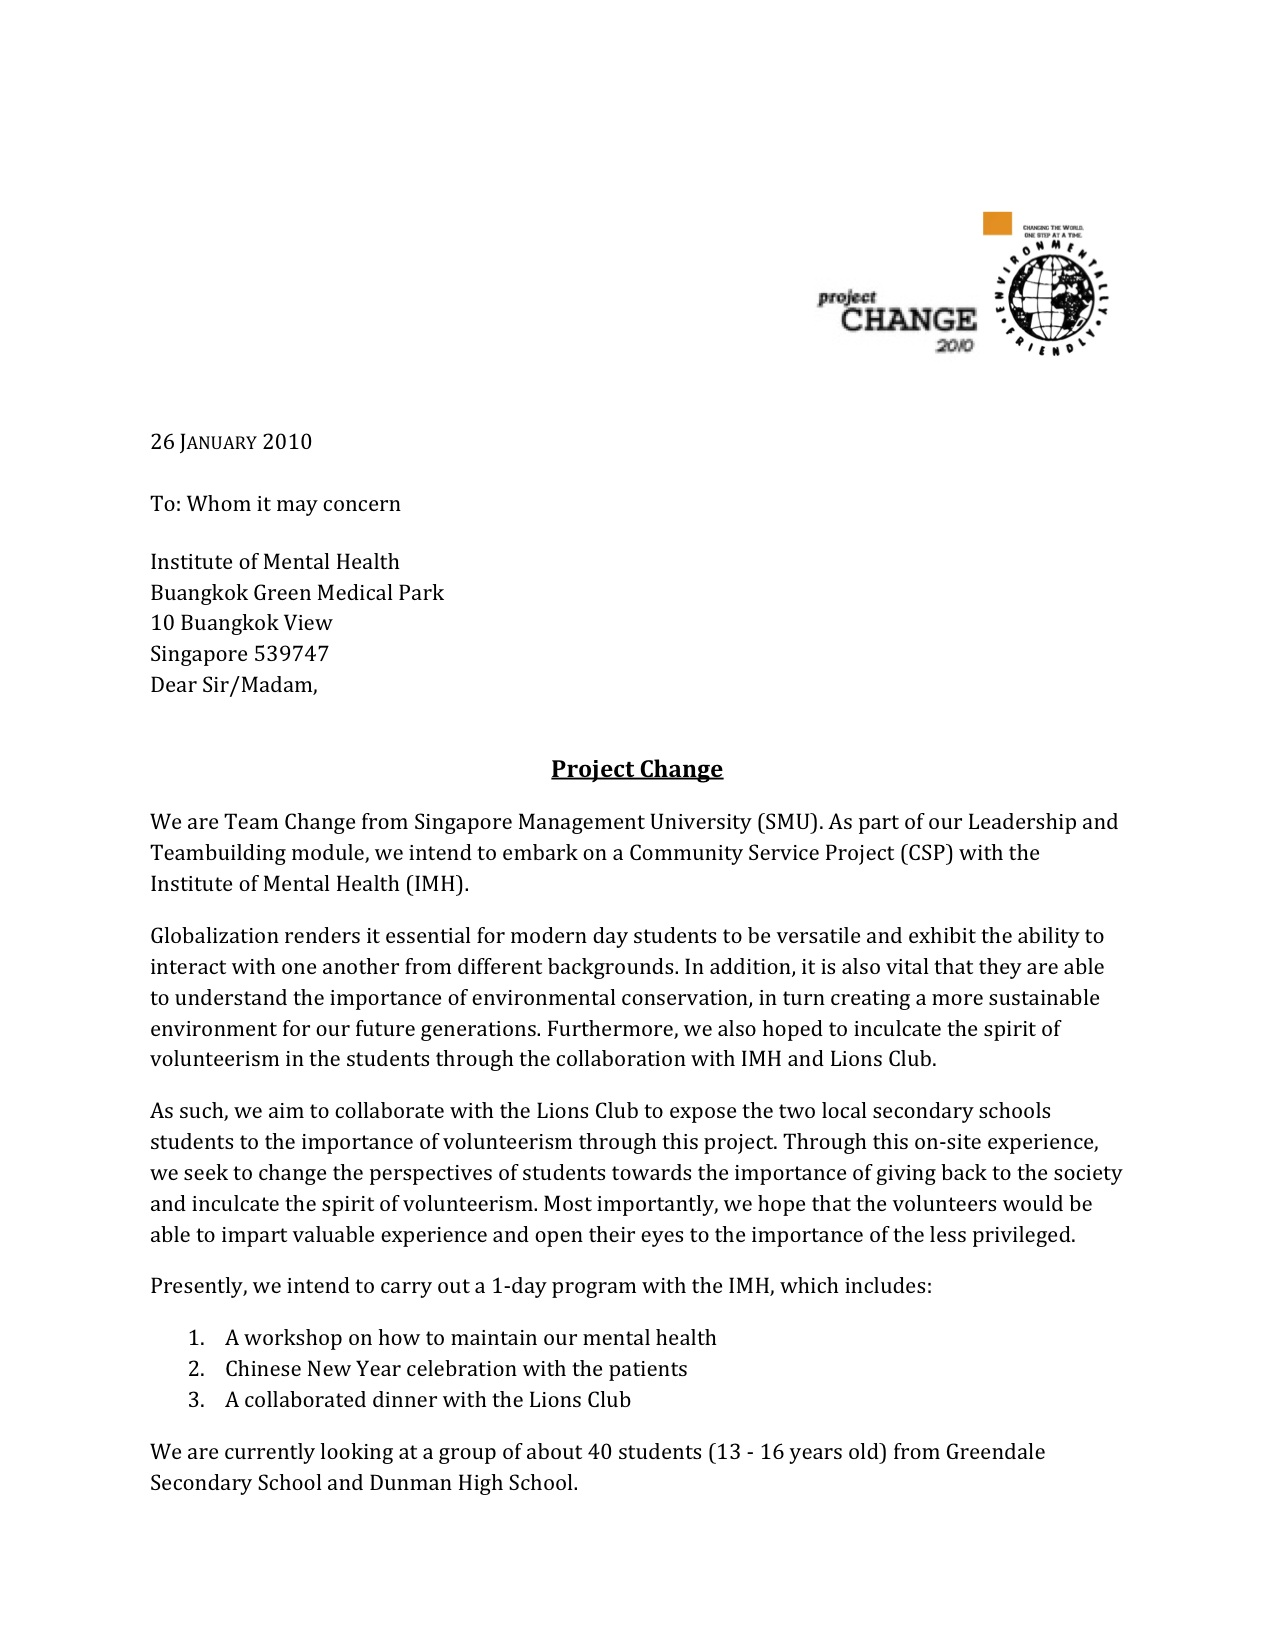 Letter Of Intent To Lions Club Project Change's Portfolio